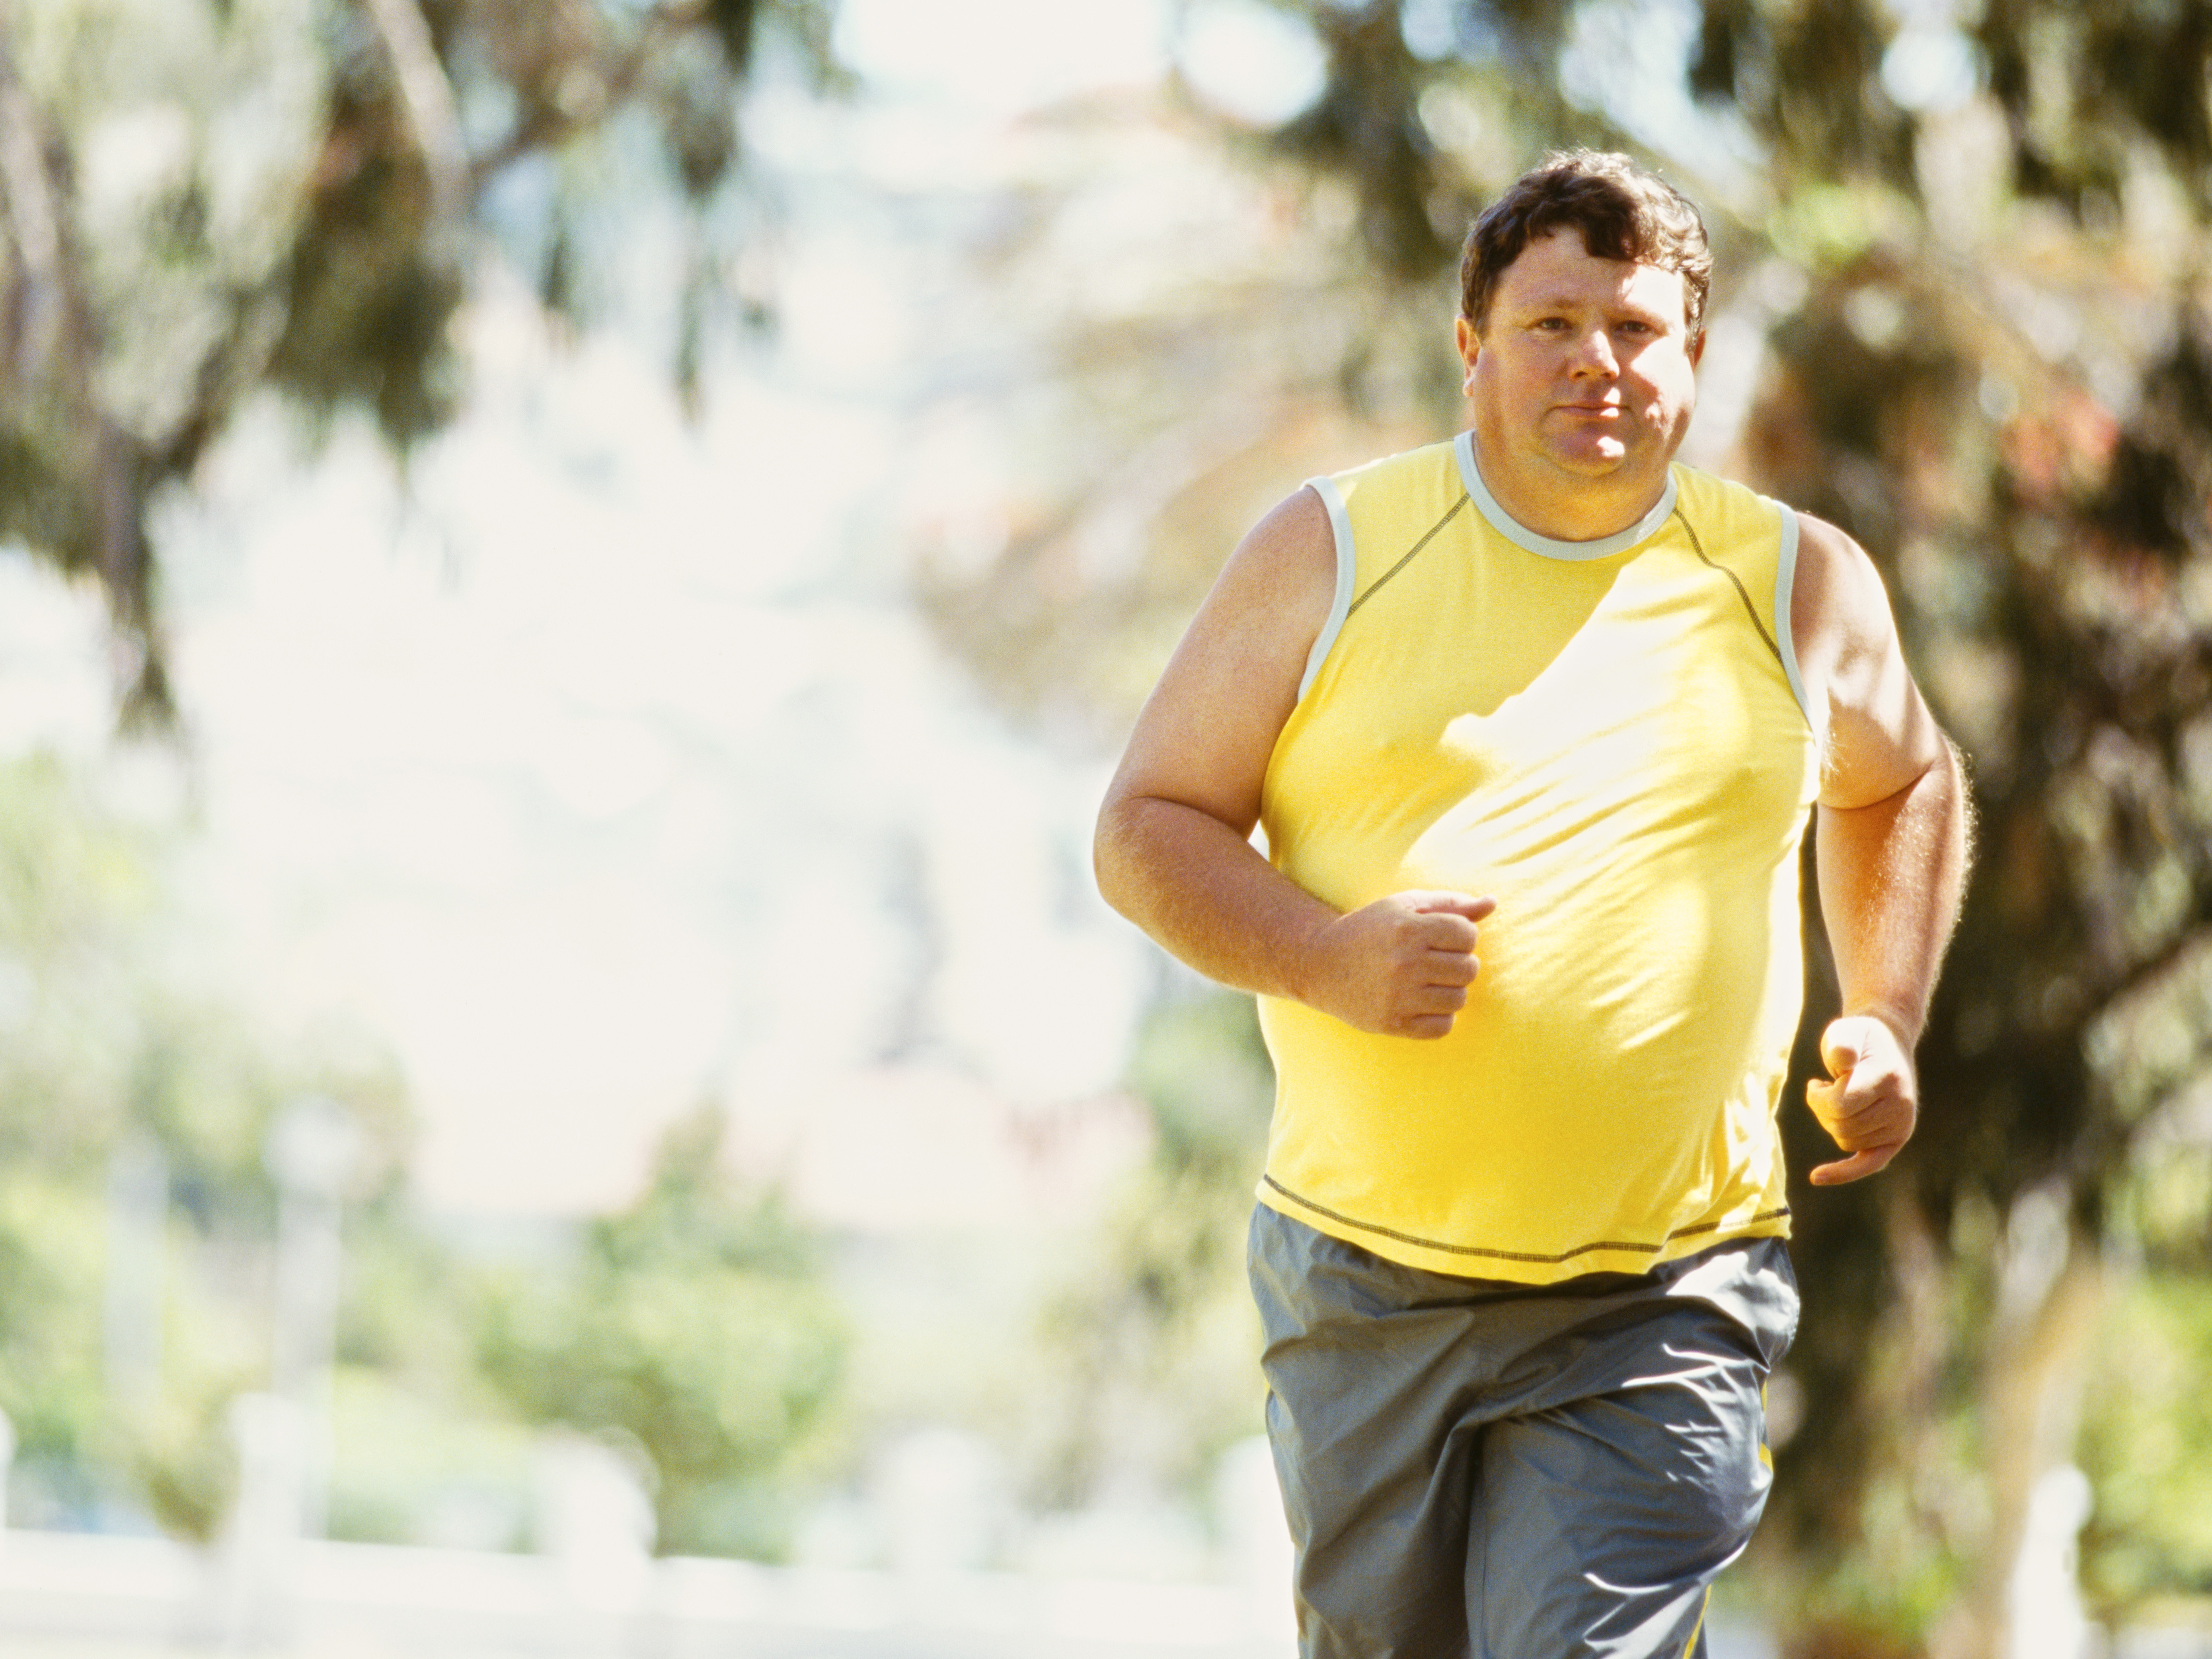 These 6 kinds of exercise can propel you to incredible health